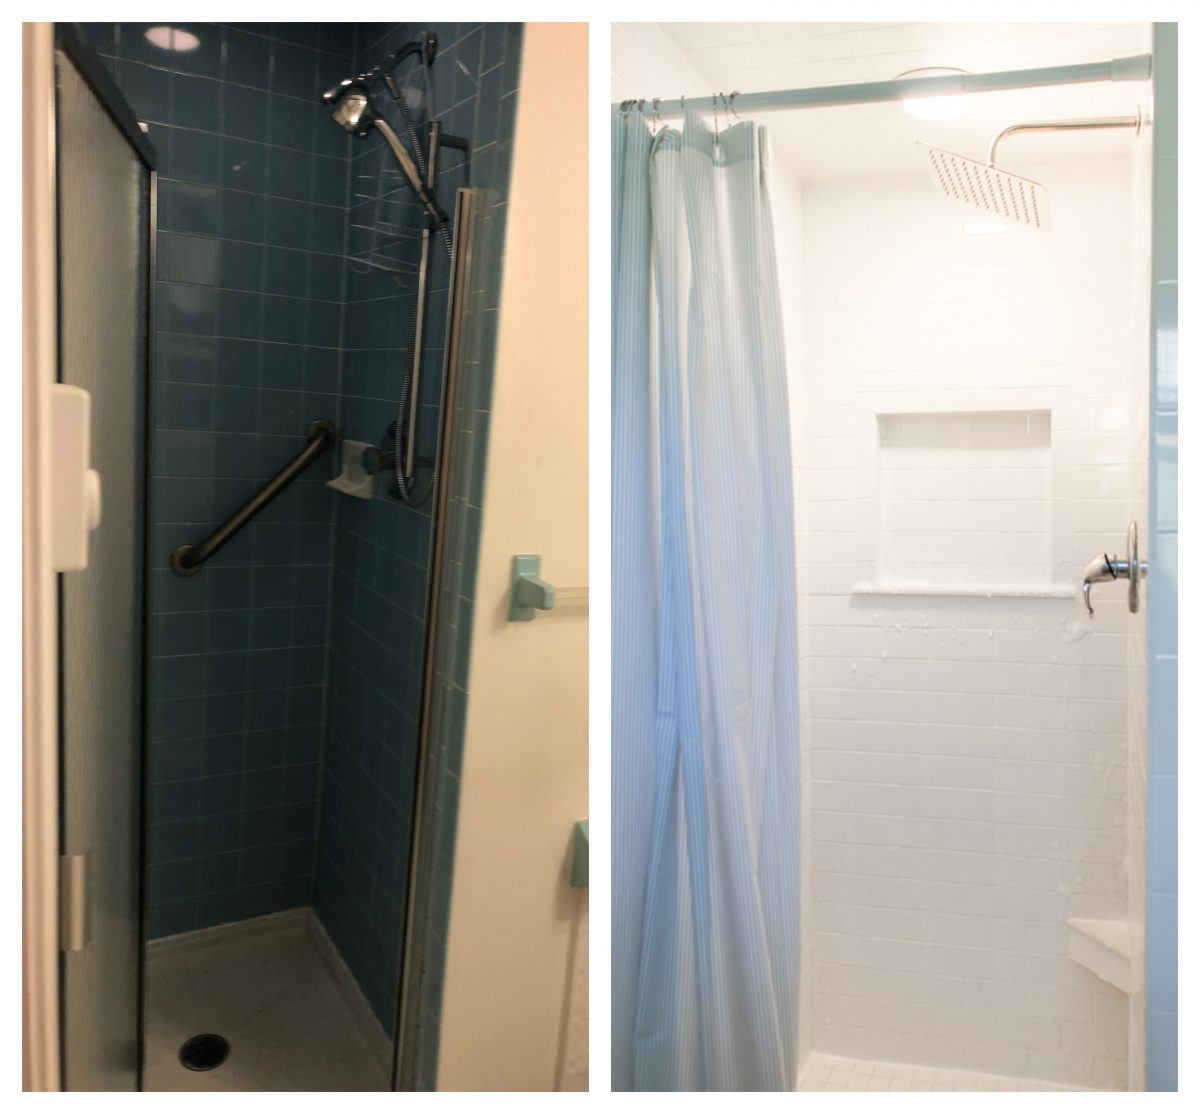 Bathroom Shower Renovation Before and After